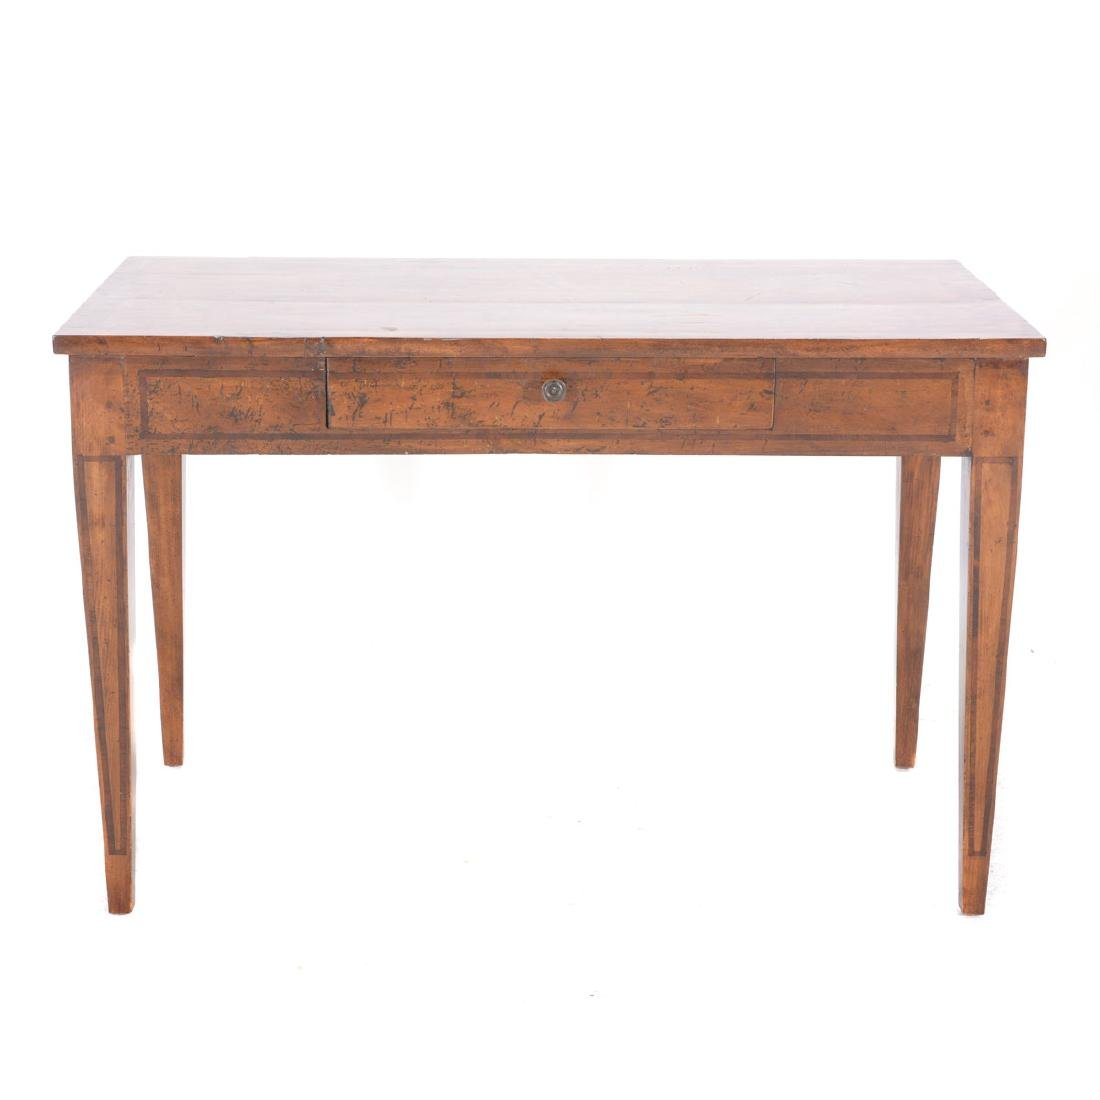 Italian Neoclassical Style Inlaid Fruitwood Center